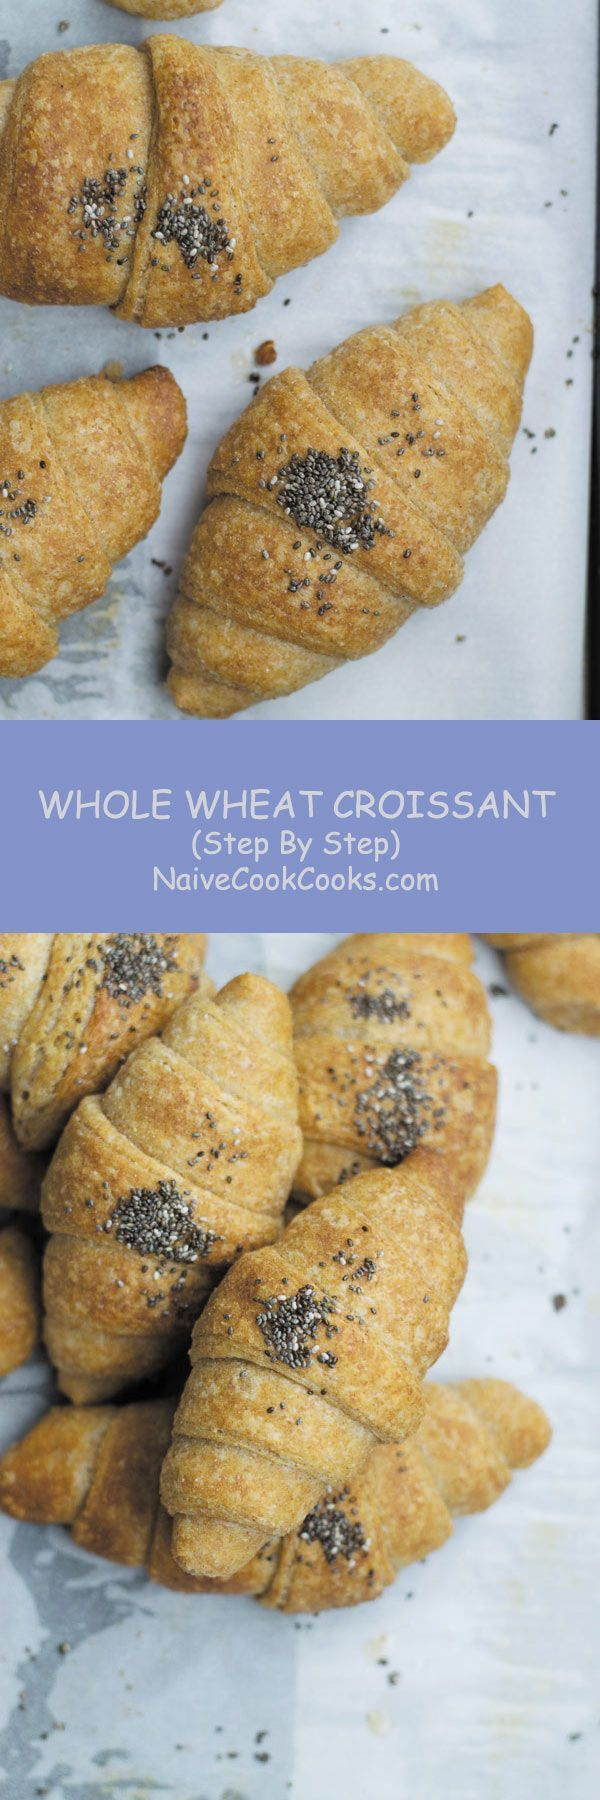 With my STEP BY STEP recipe, make these healthier whole wheat croissants!! So good!! #recipes #bread #french #pastry #croissant #breakfast